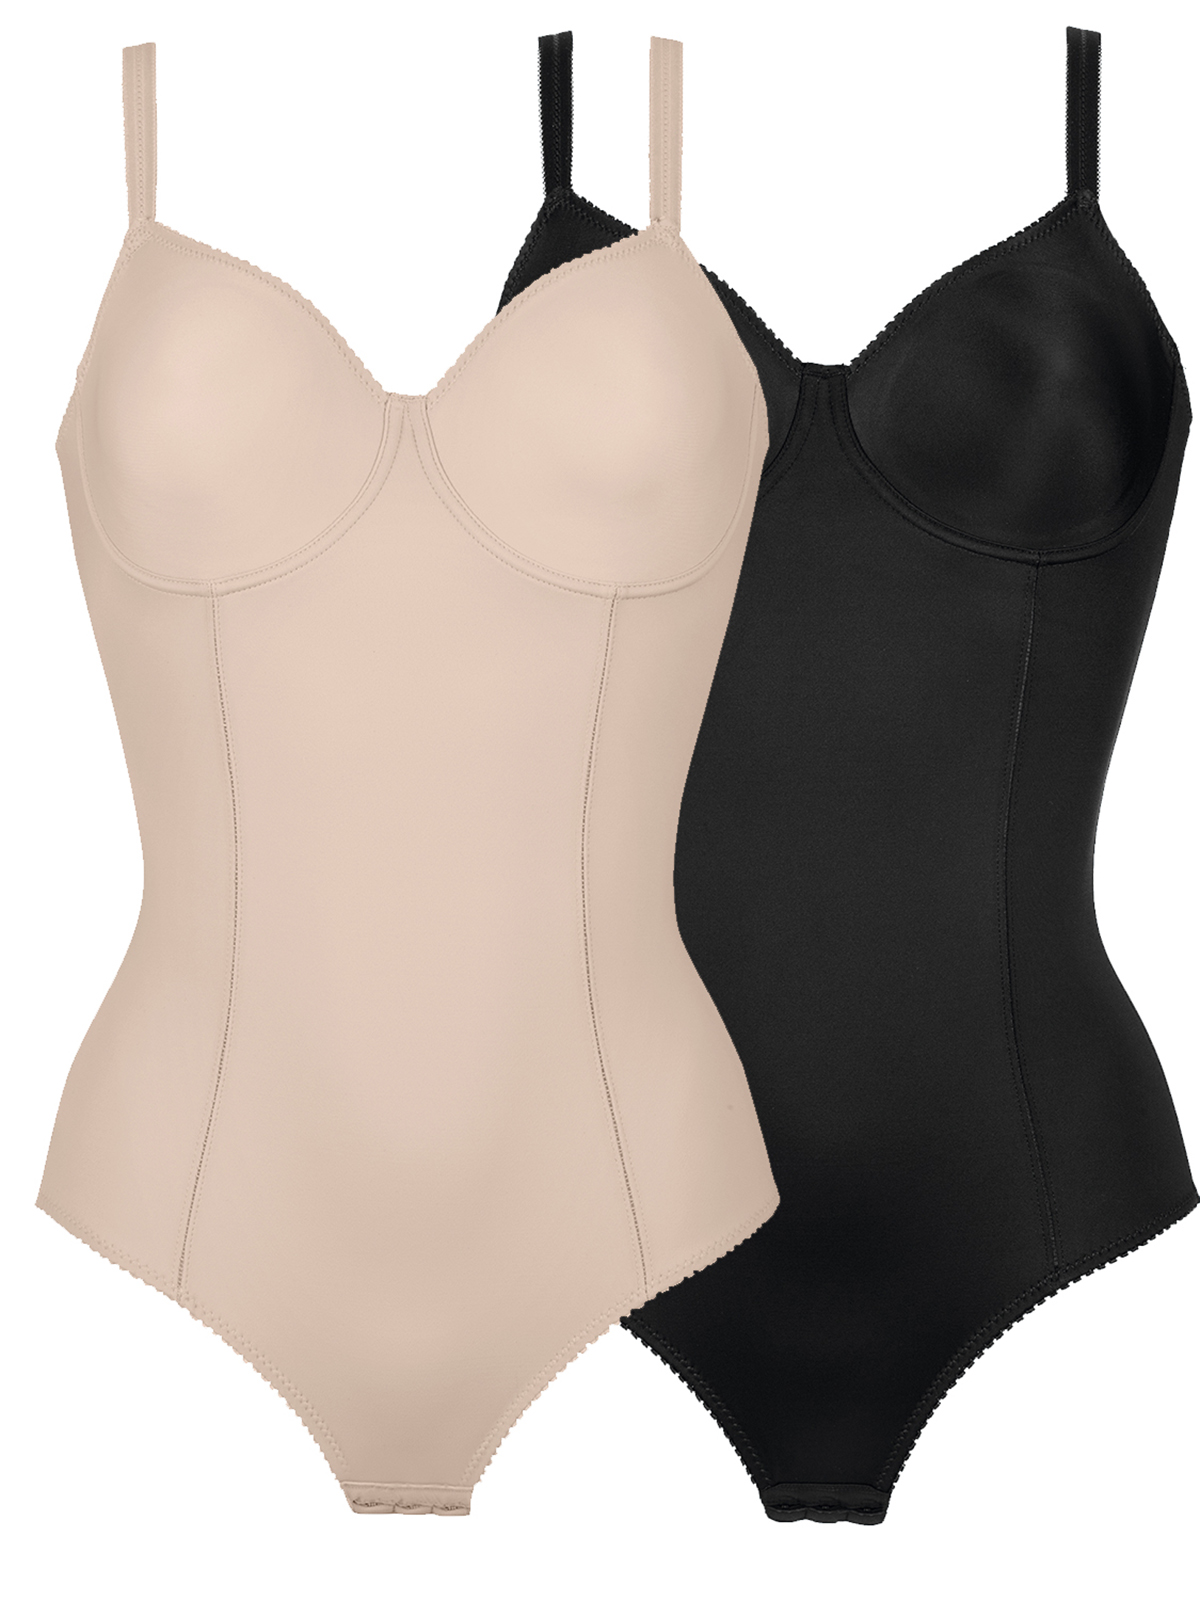 07777ae366554 2 Pack Underwire Bodysuit 3260 by Naturana